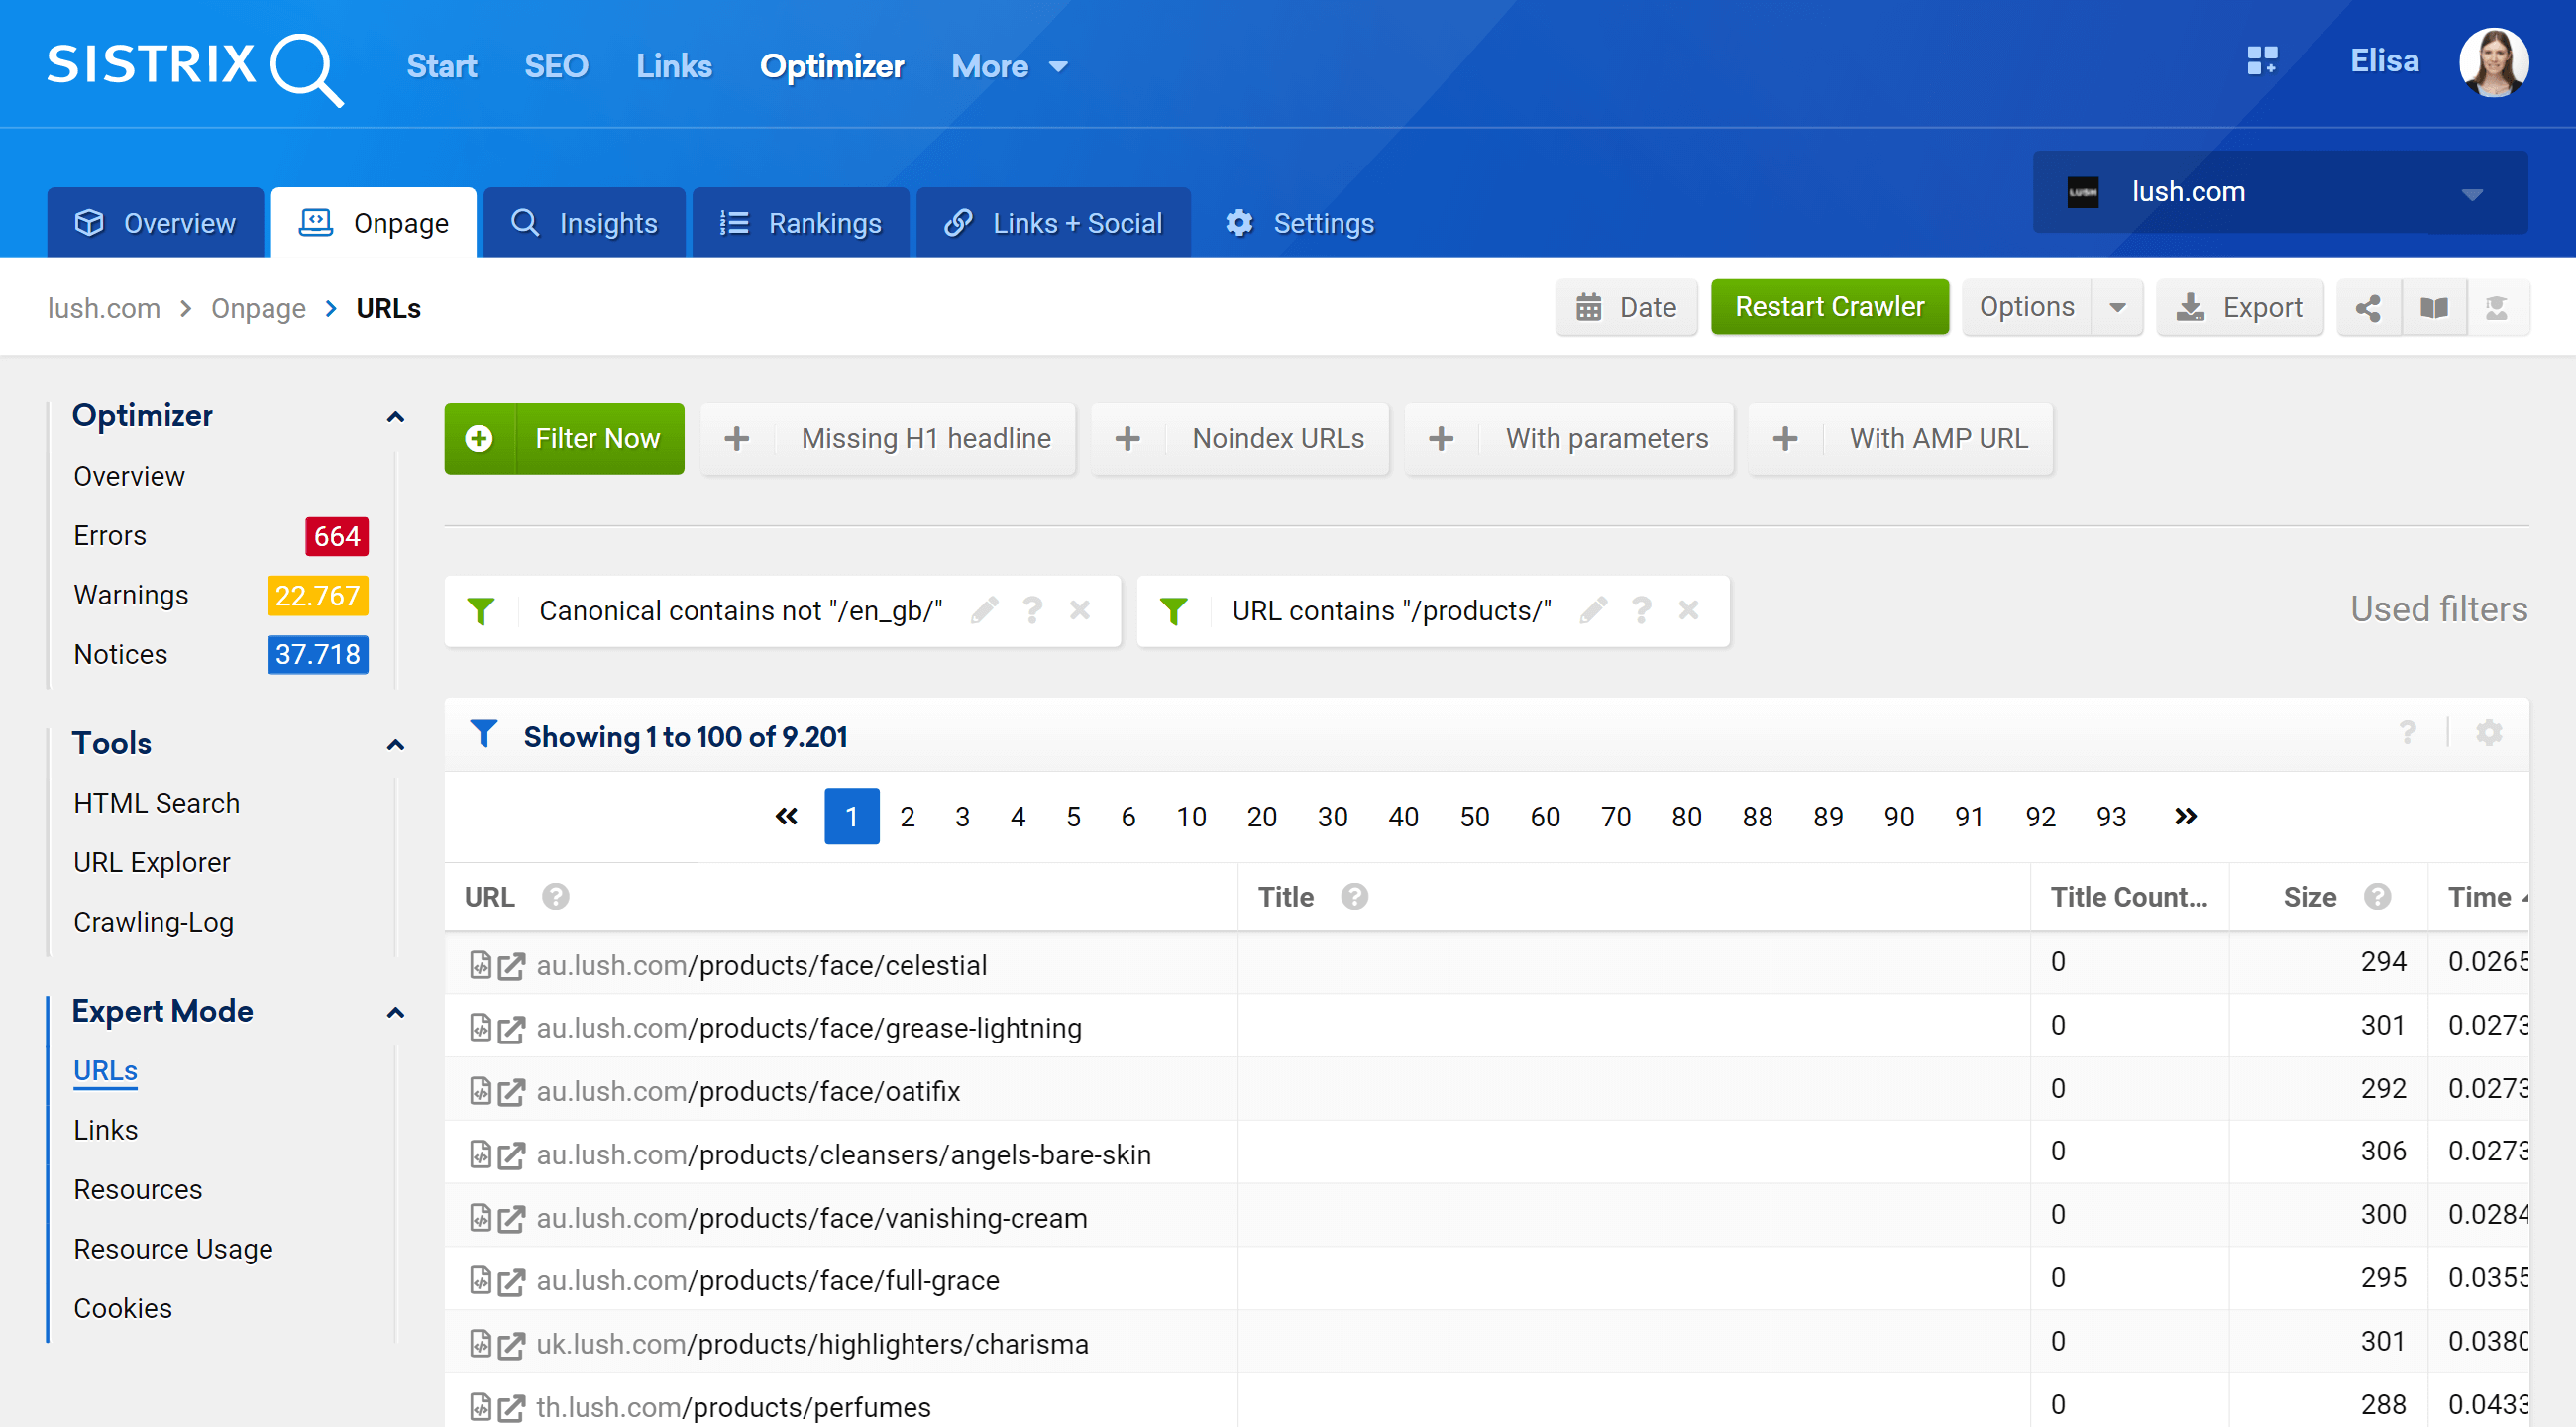 Filters in the URLs table